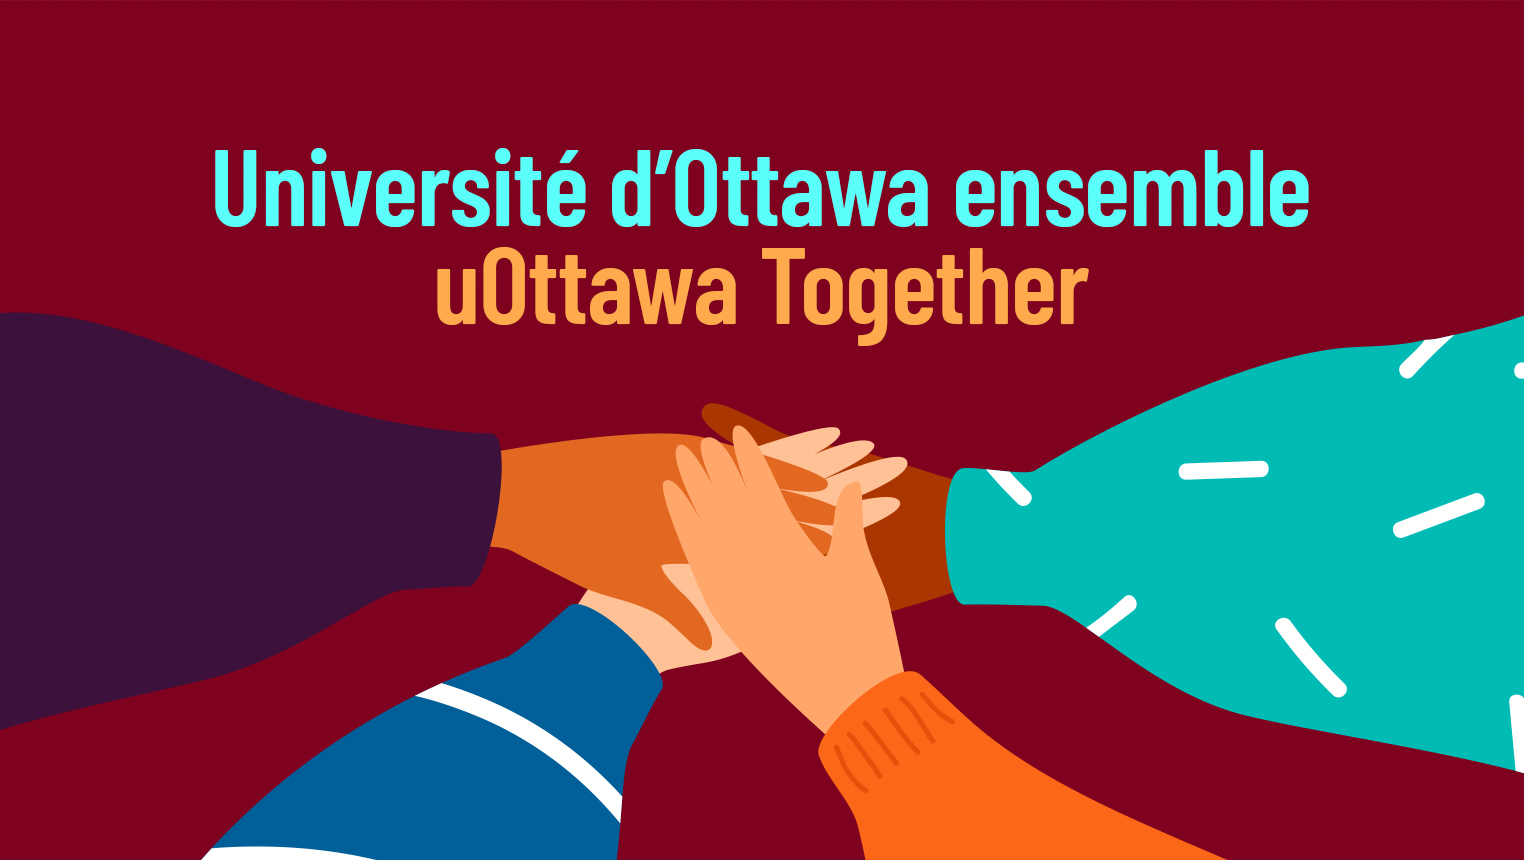 Text : uOttawa Together. Four hands coming together.